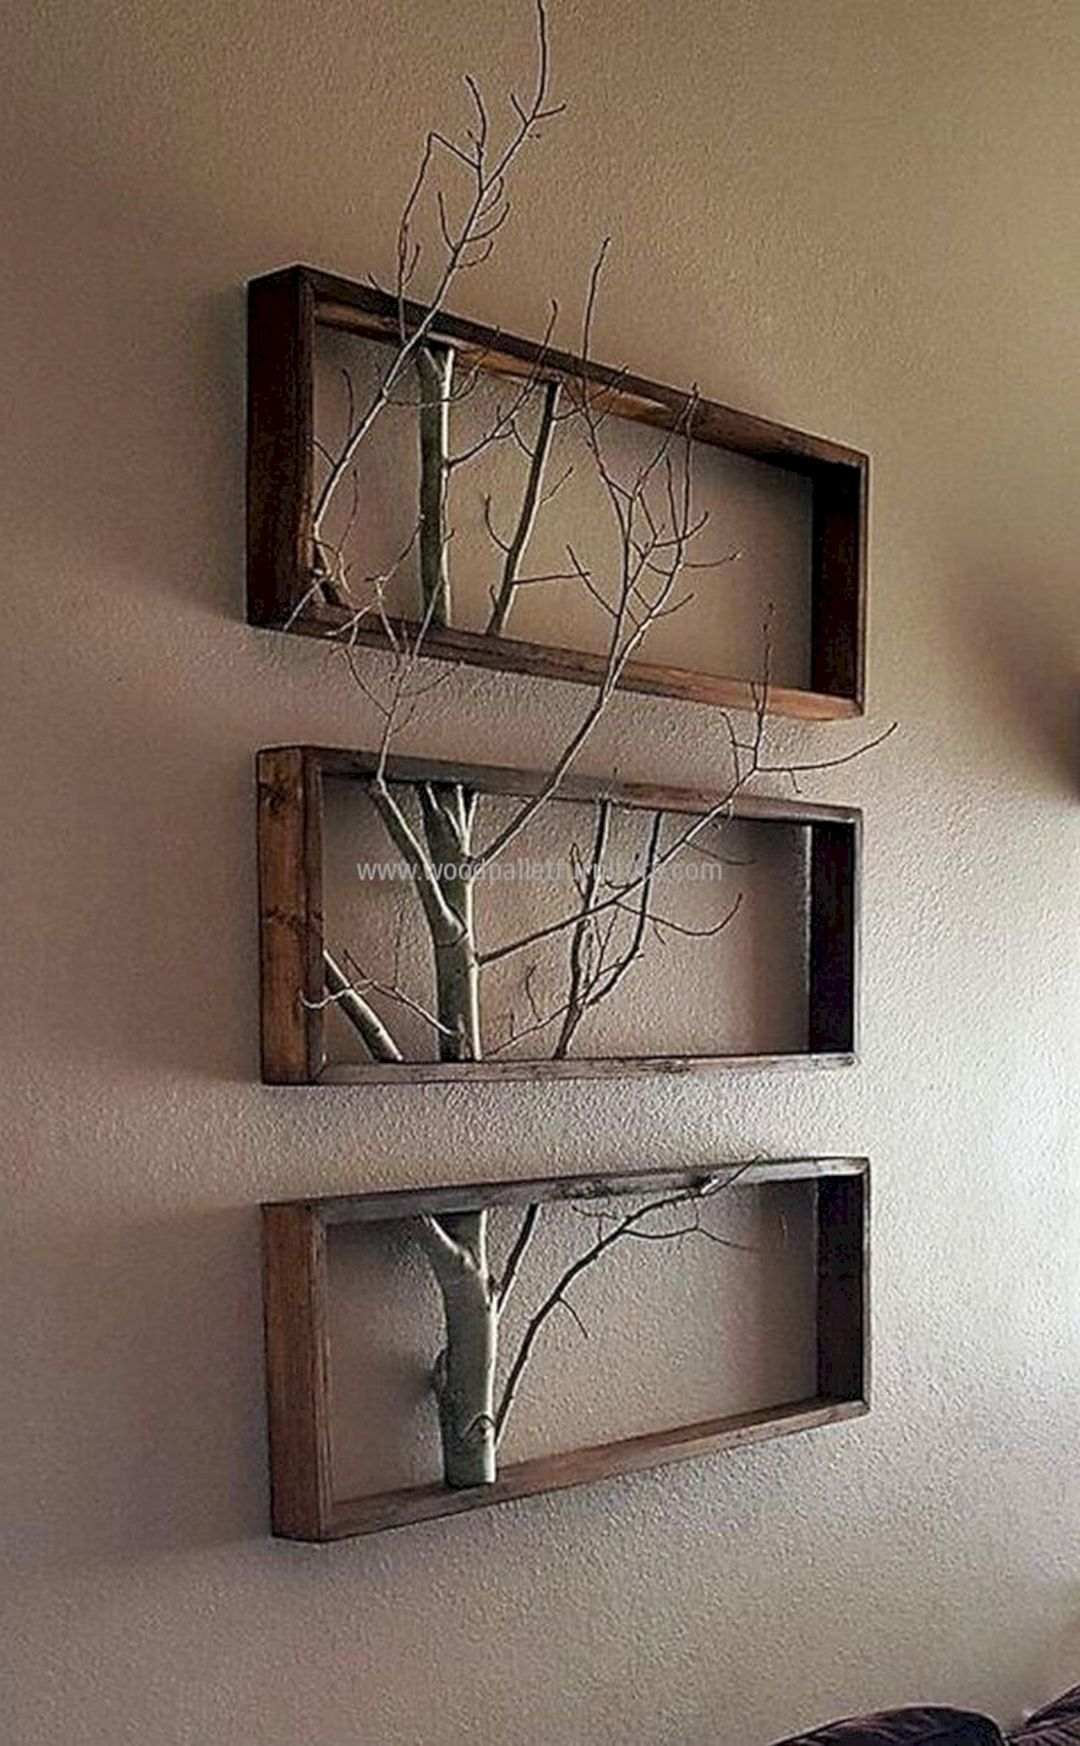 18 Diy Creative Home Decoration With Wall Wood Branches Ideas Wood Pallet Wall Decor Pallet Wall Decor Diy Home Decor Projects